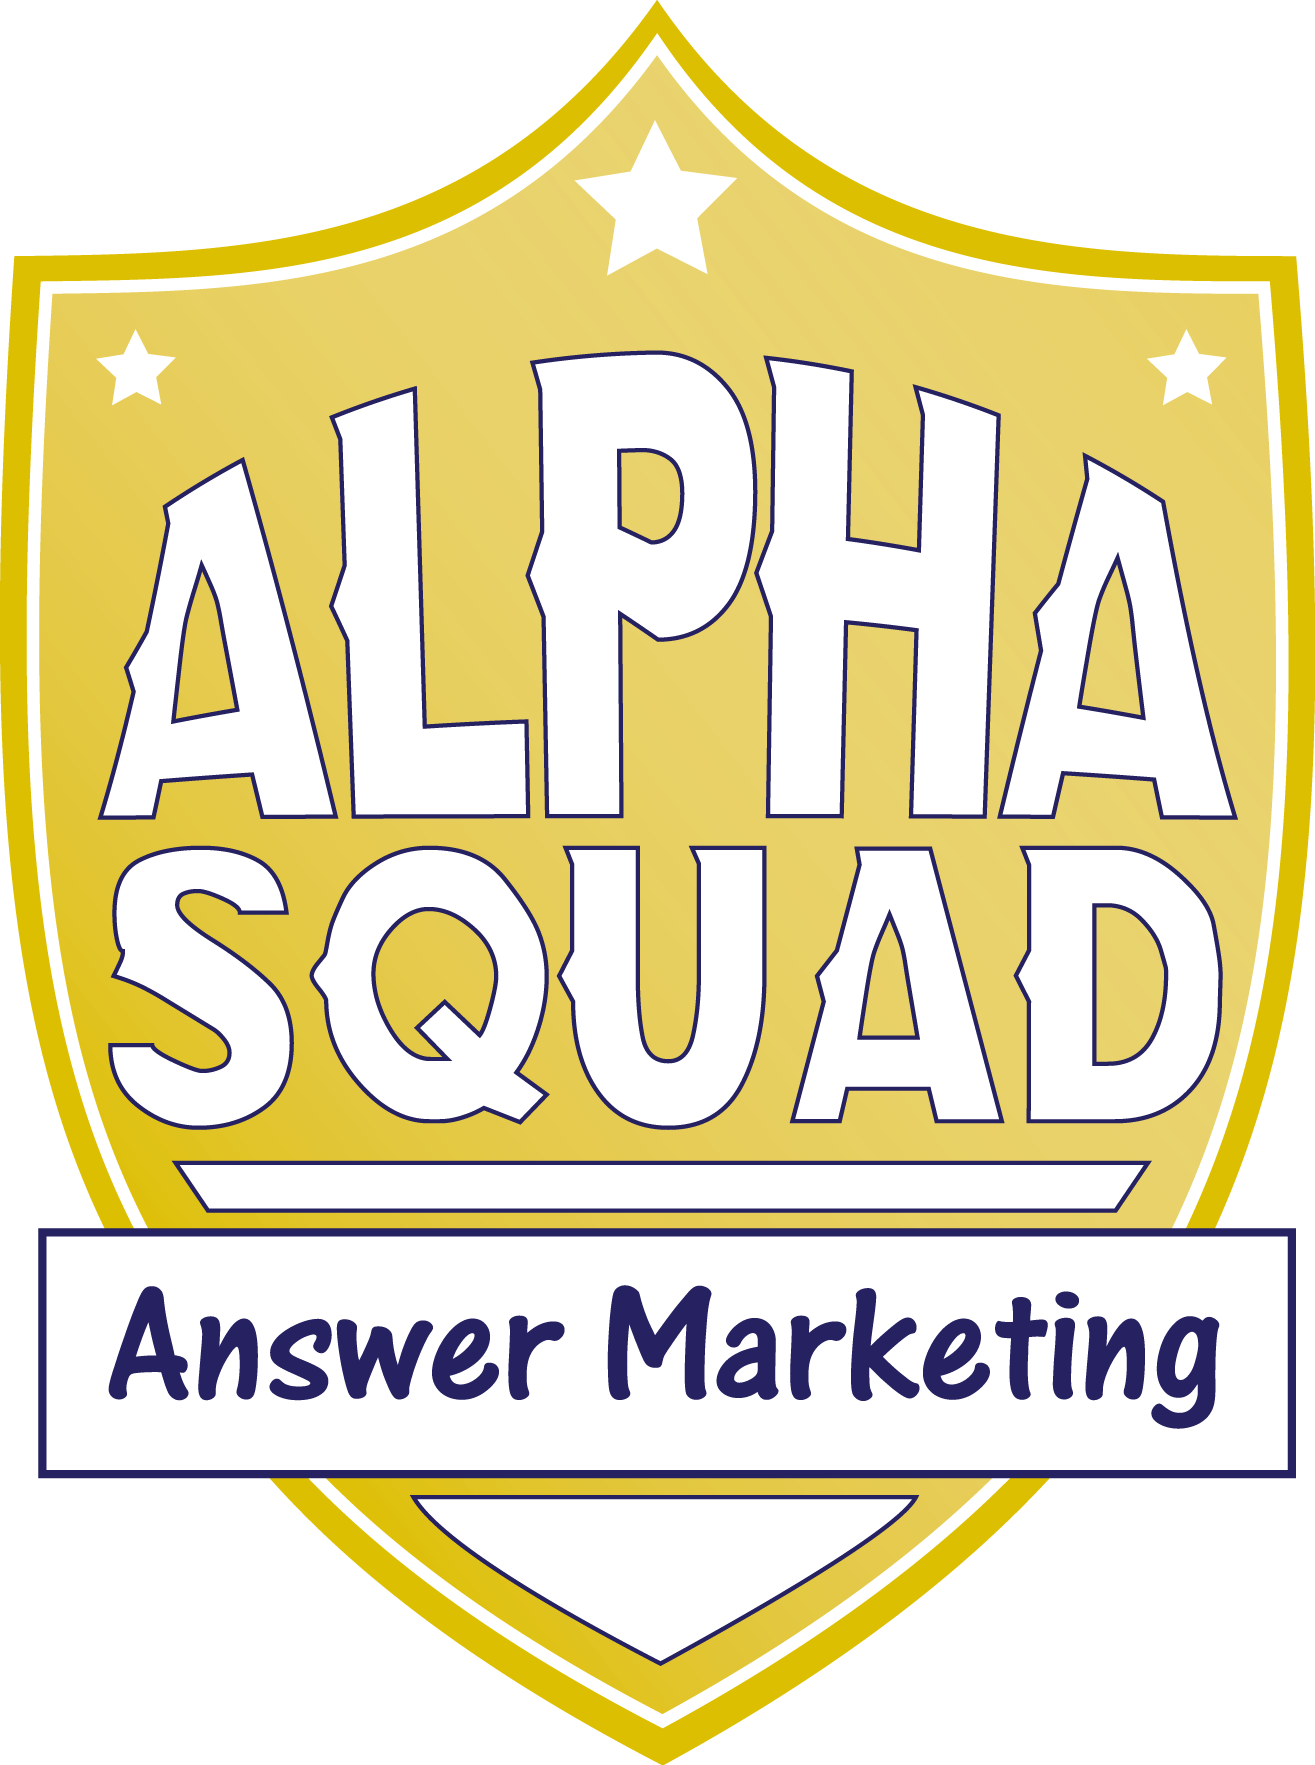 Answer Marketing image 7